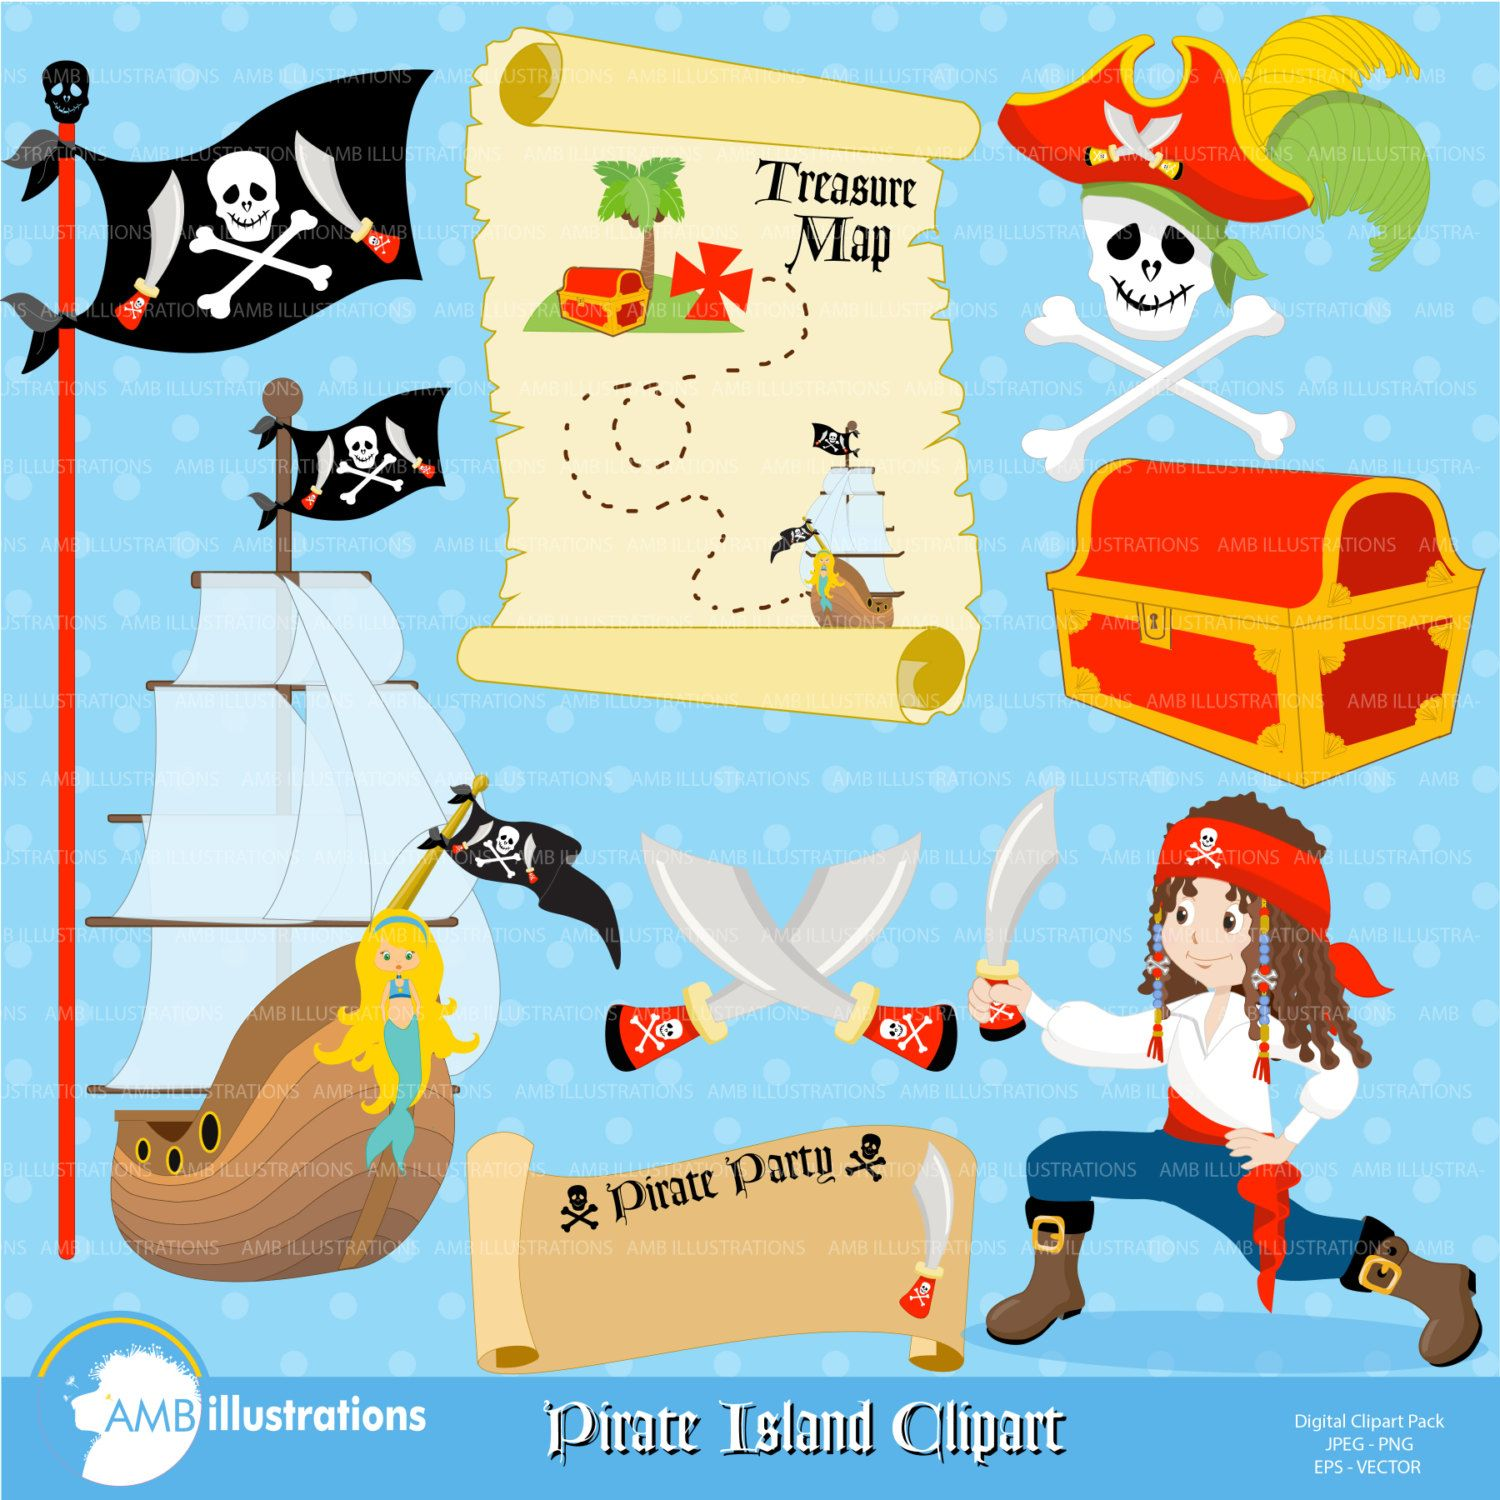 Pirate Clipart Pirate Ship Treasure Map Treasure Chest and Skull